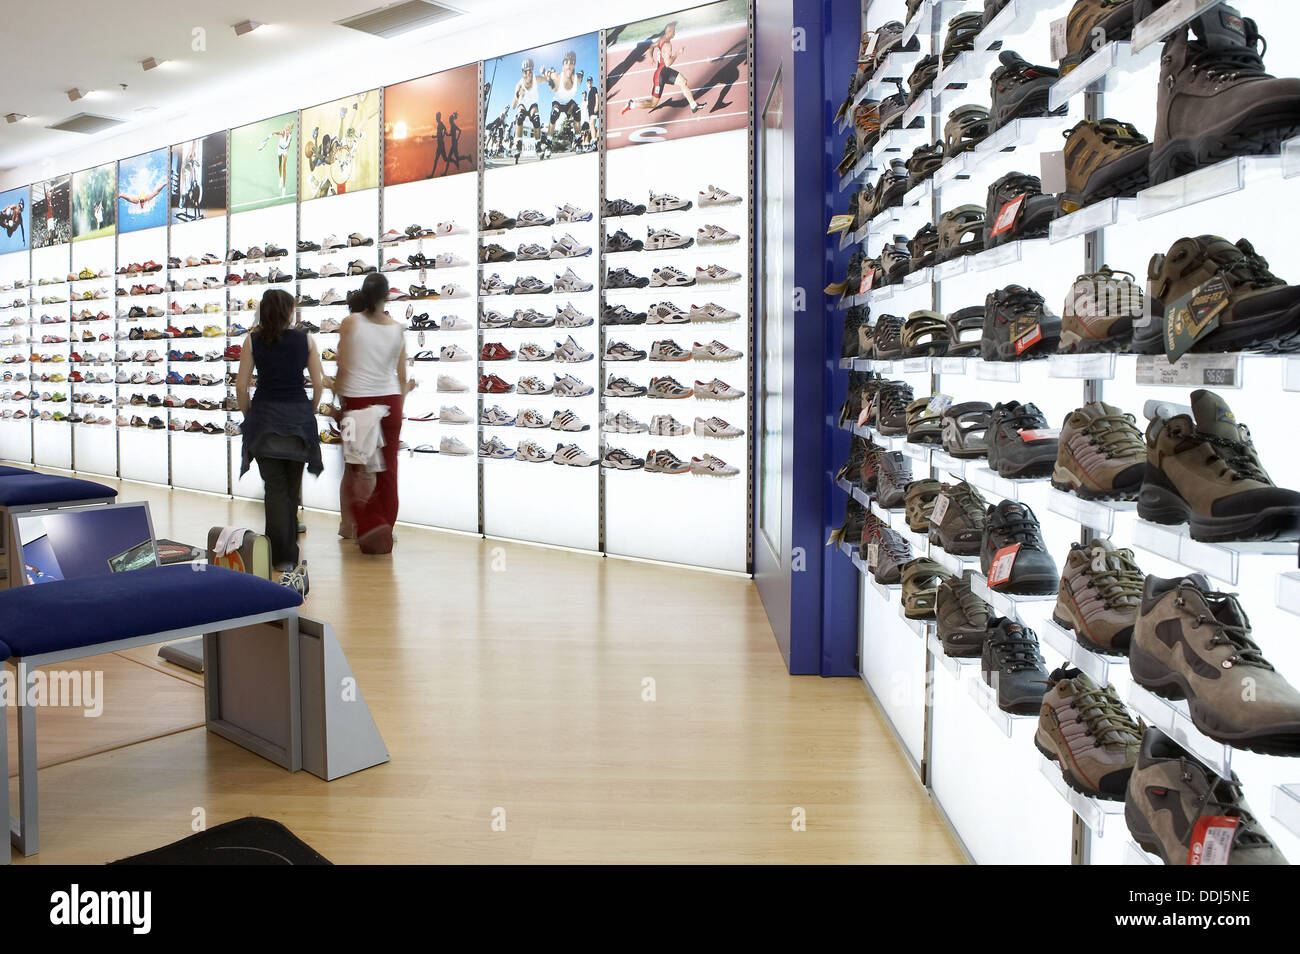 sports shoes in shoe shop shopping mall stock photo